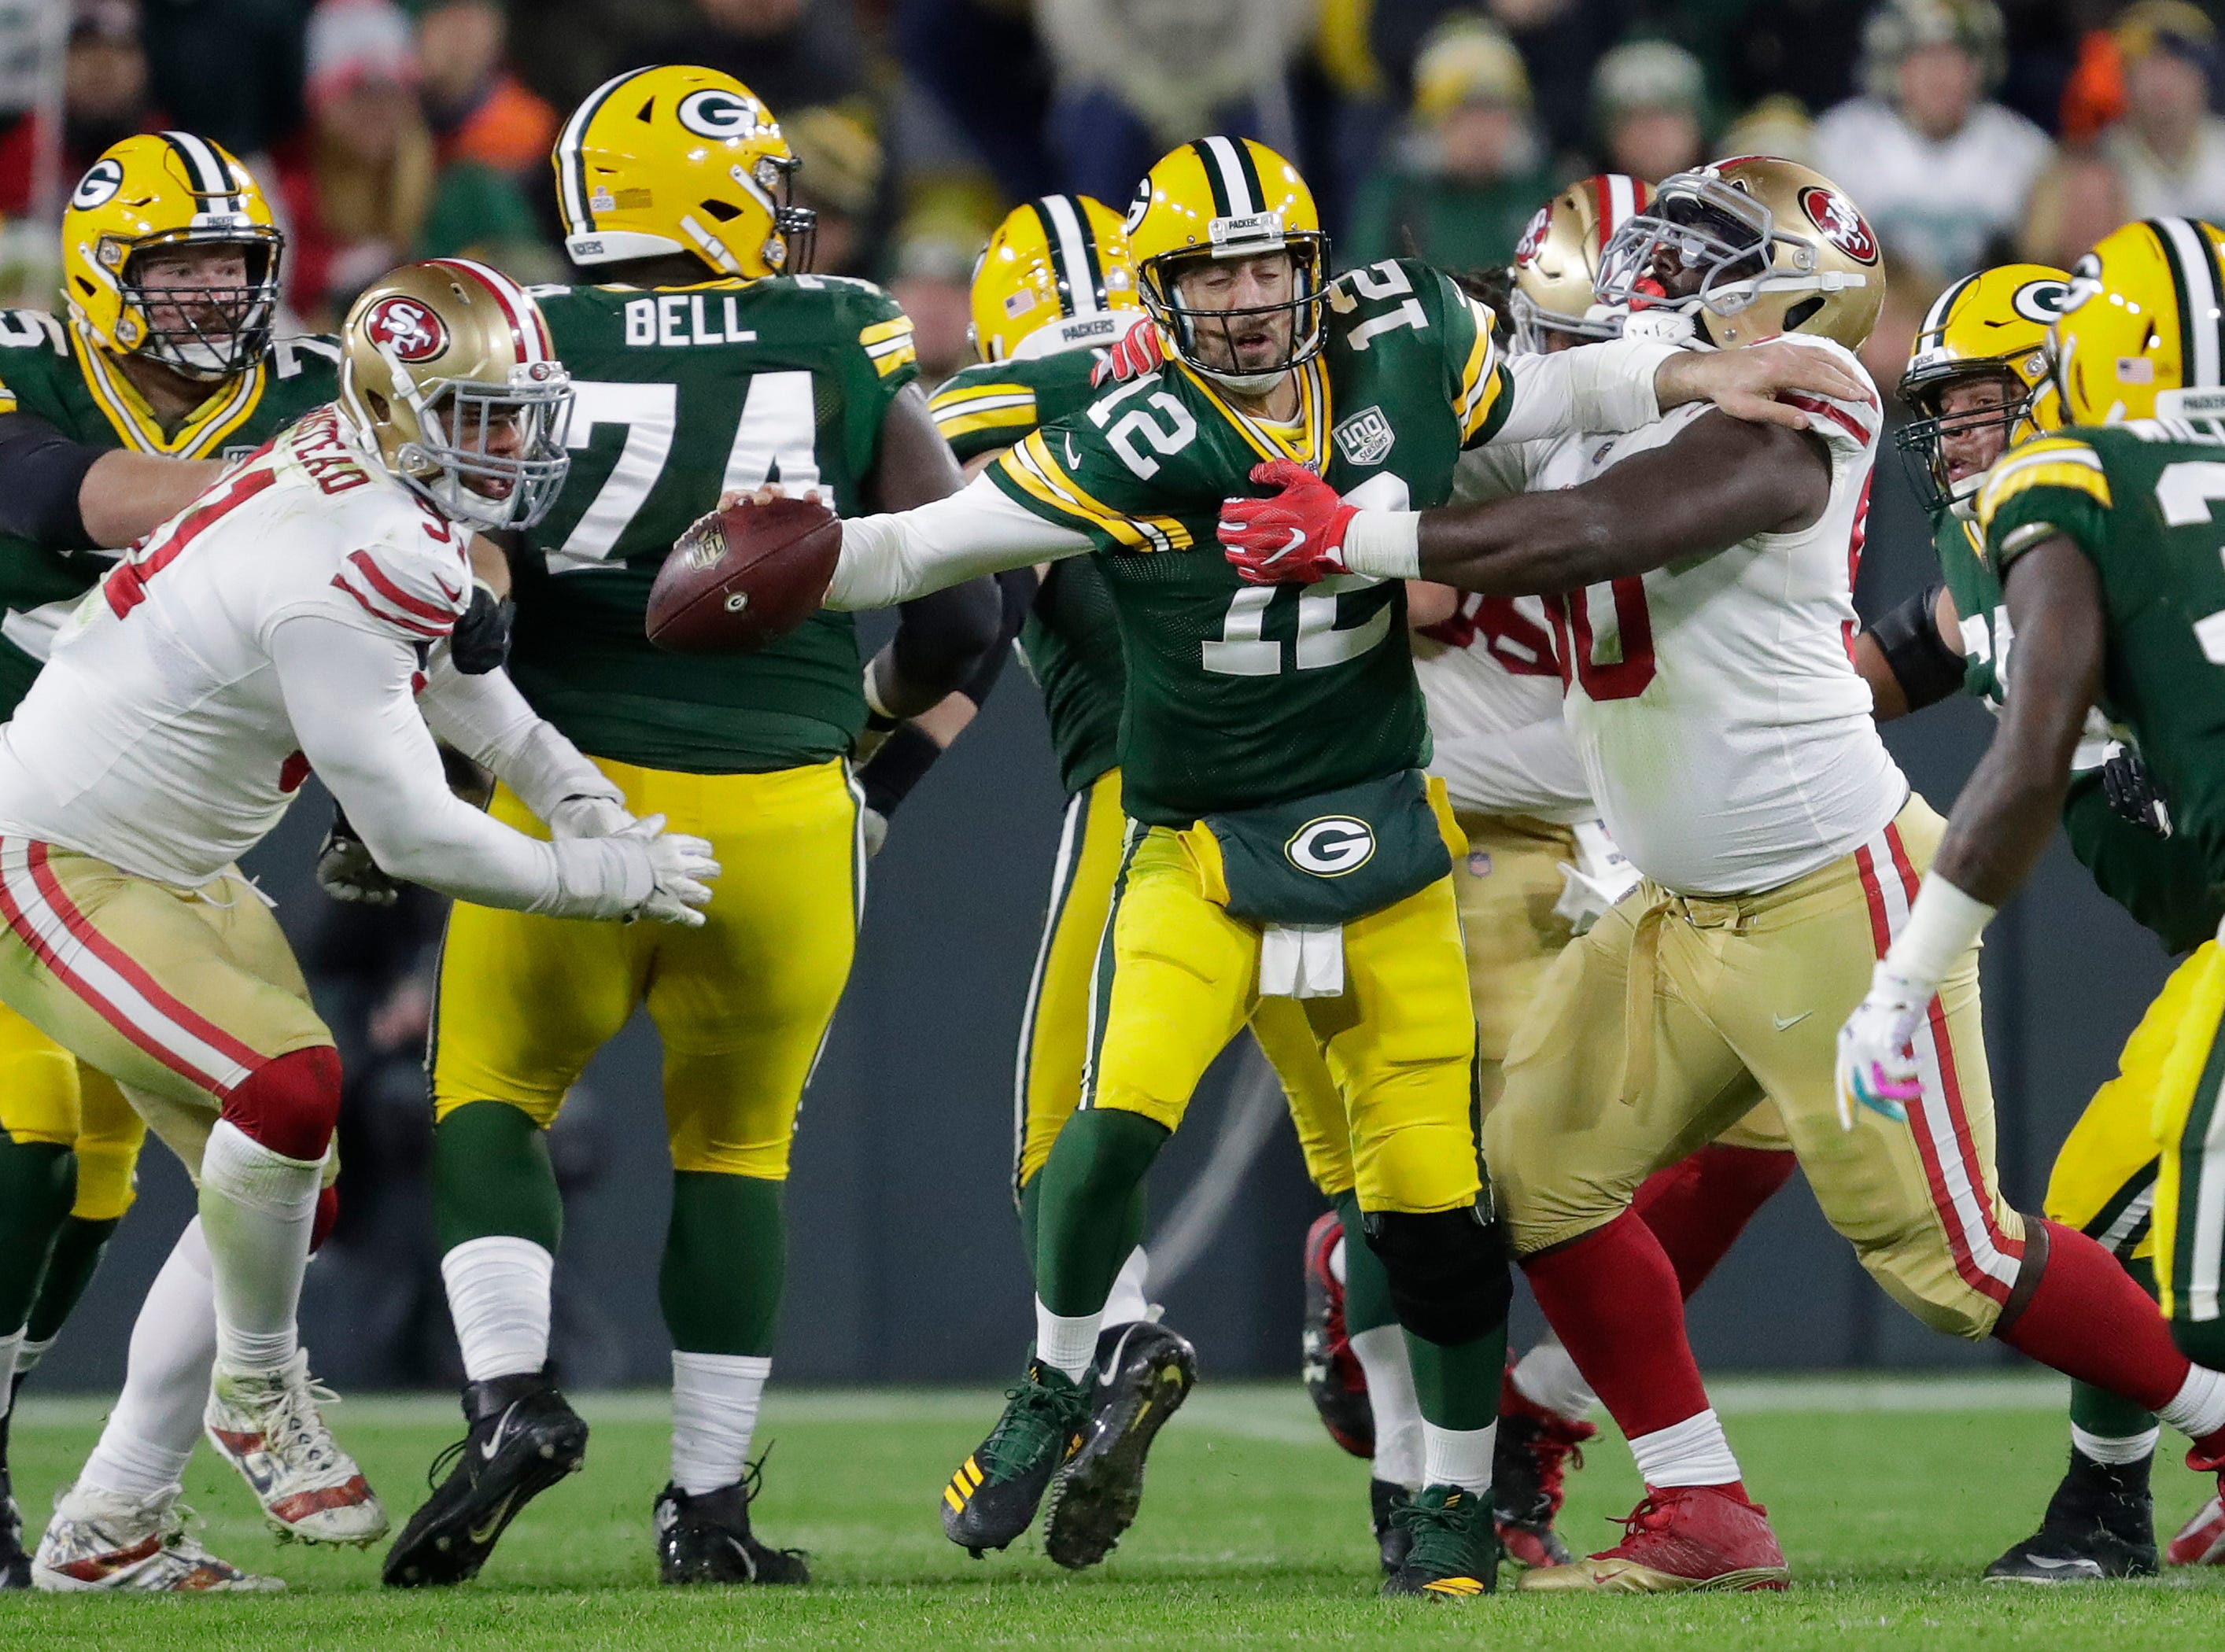 Green Bay Packers quarterback Aaron Rodgers (12) is pressured into throwing an incomplete pass by San Francisco 49ers defensive tackle Earl Mitchell (90) during their football game Monday, Oct. 15, 2018, at Lambeau Field in Green Bay, Wis. 